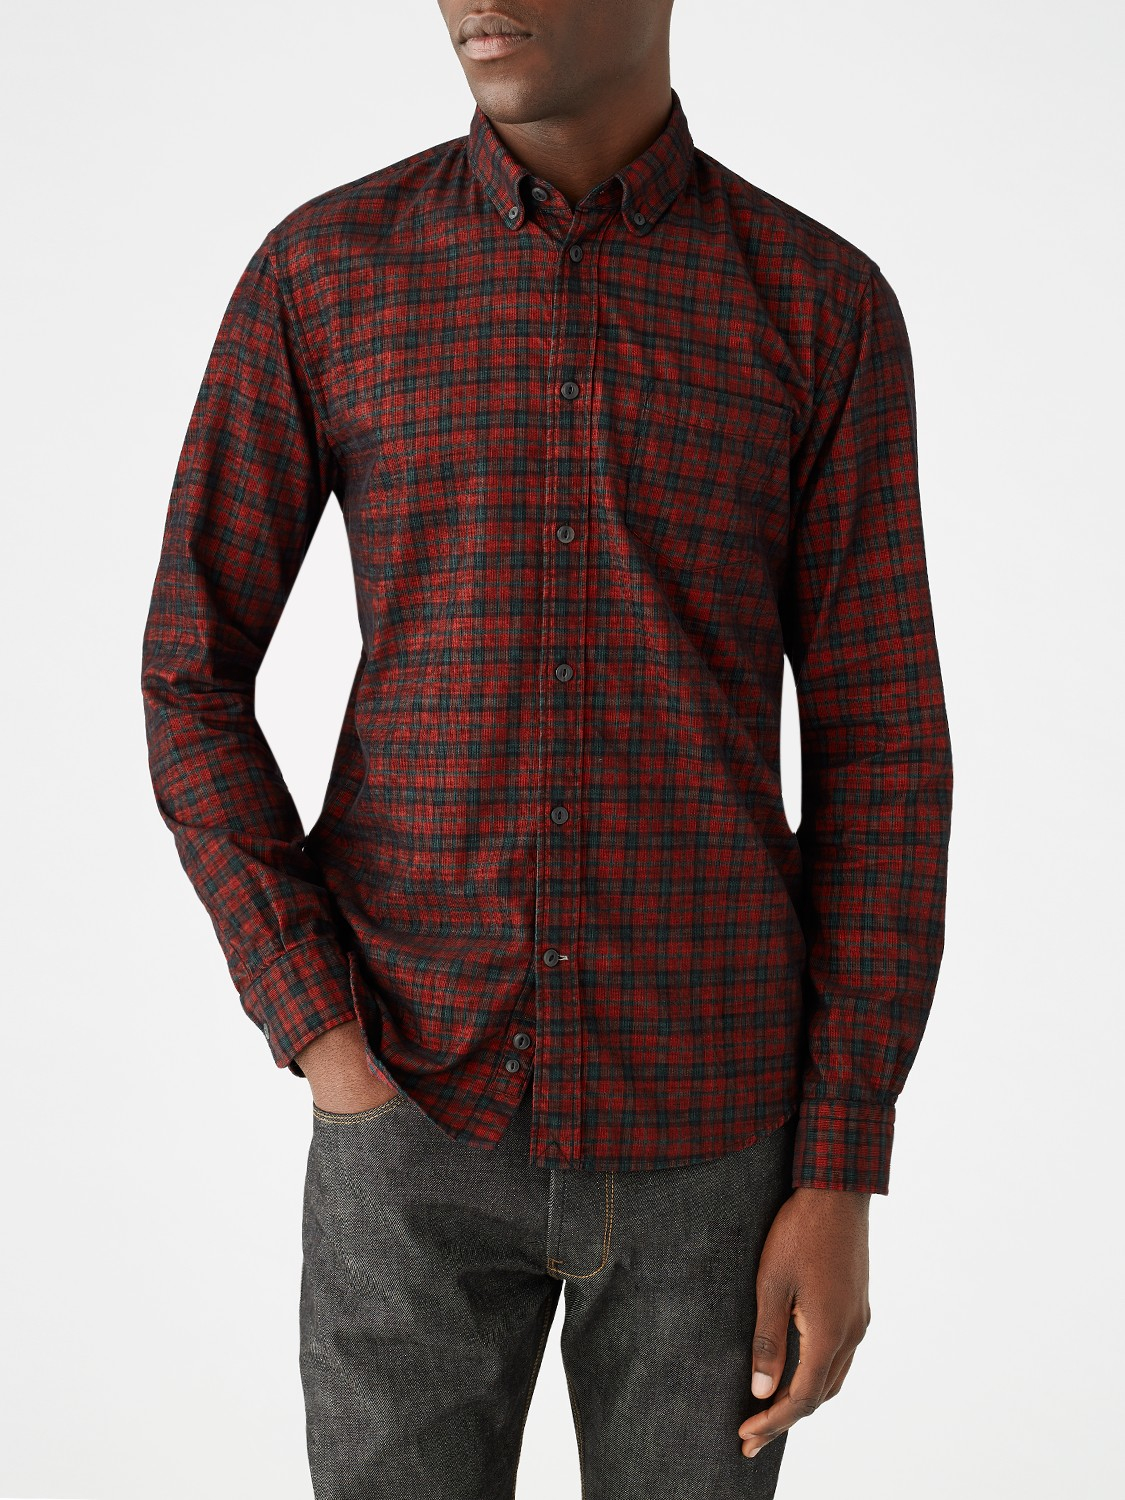 Jigsaw Check Needle Cord Slim Button Down Shirt in Red for Men